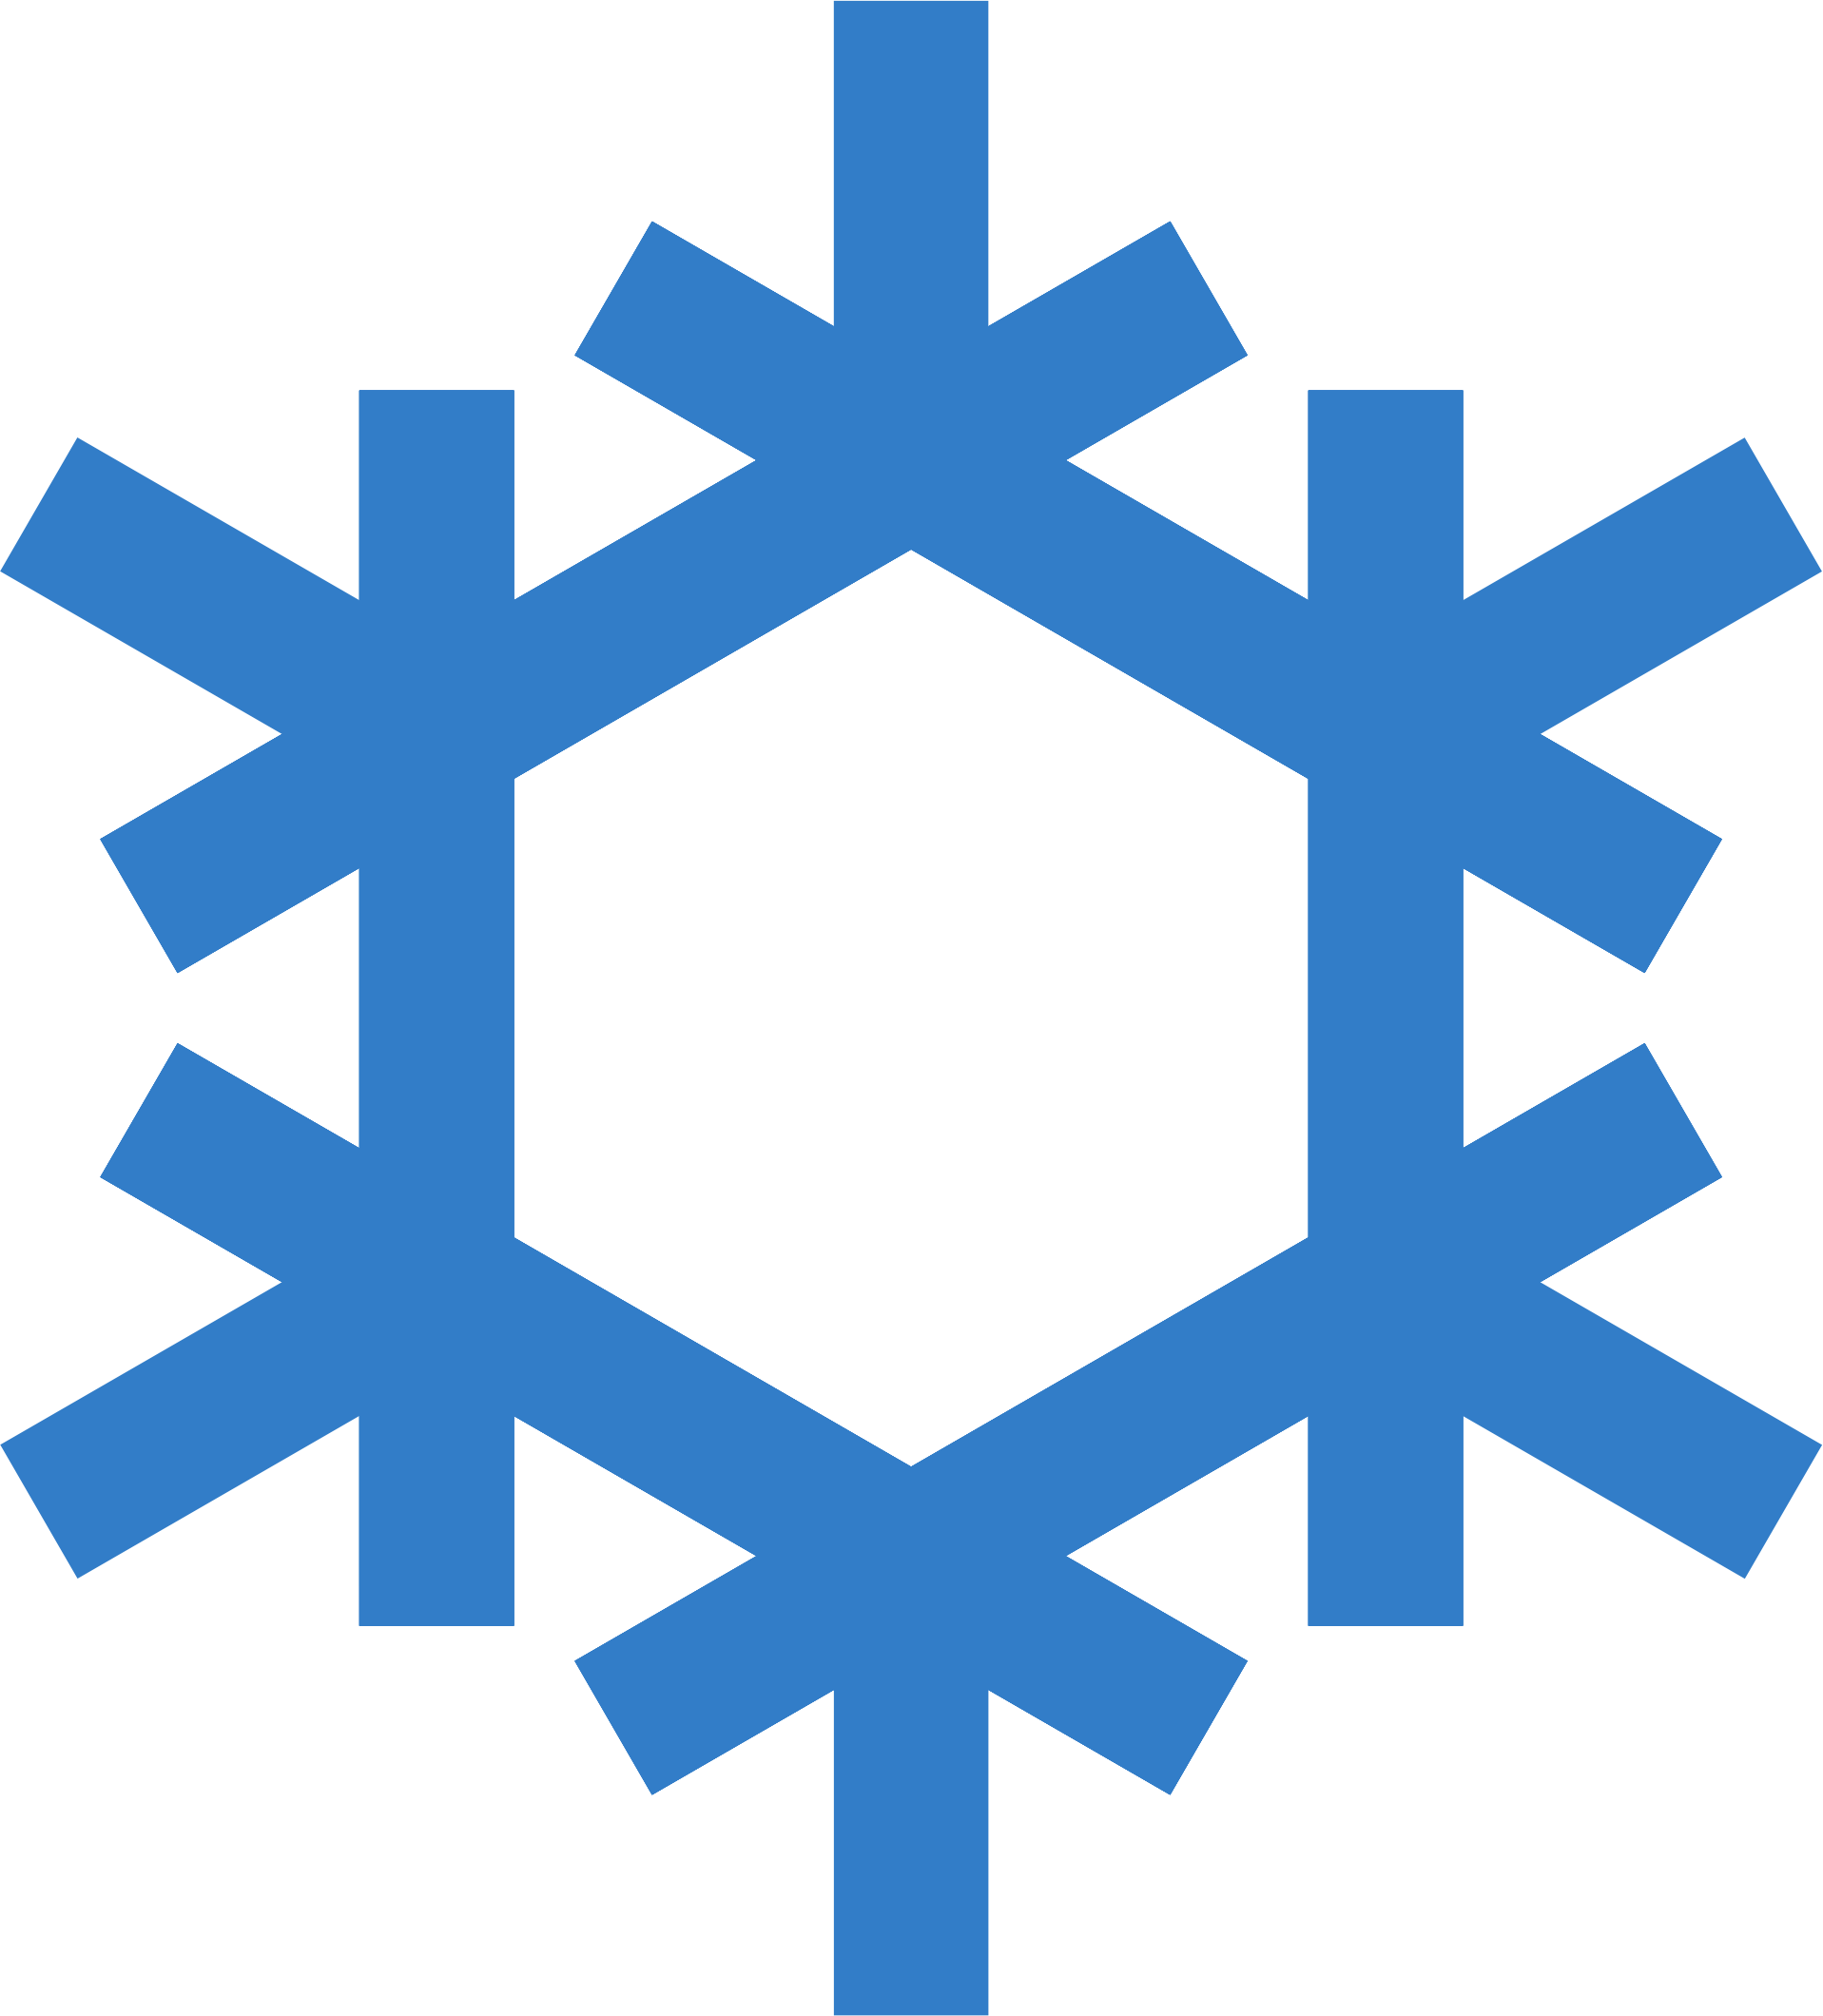 Cool clipart air conditioner. Icon airconditioning big image